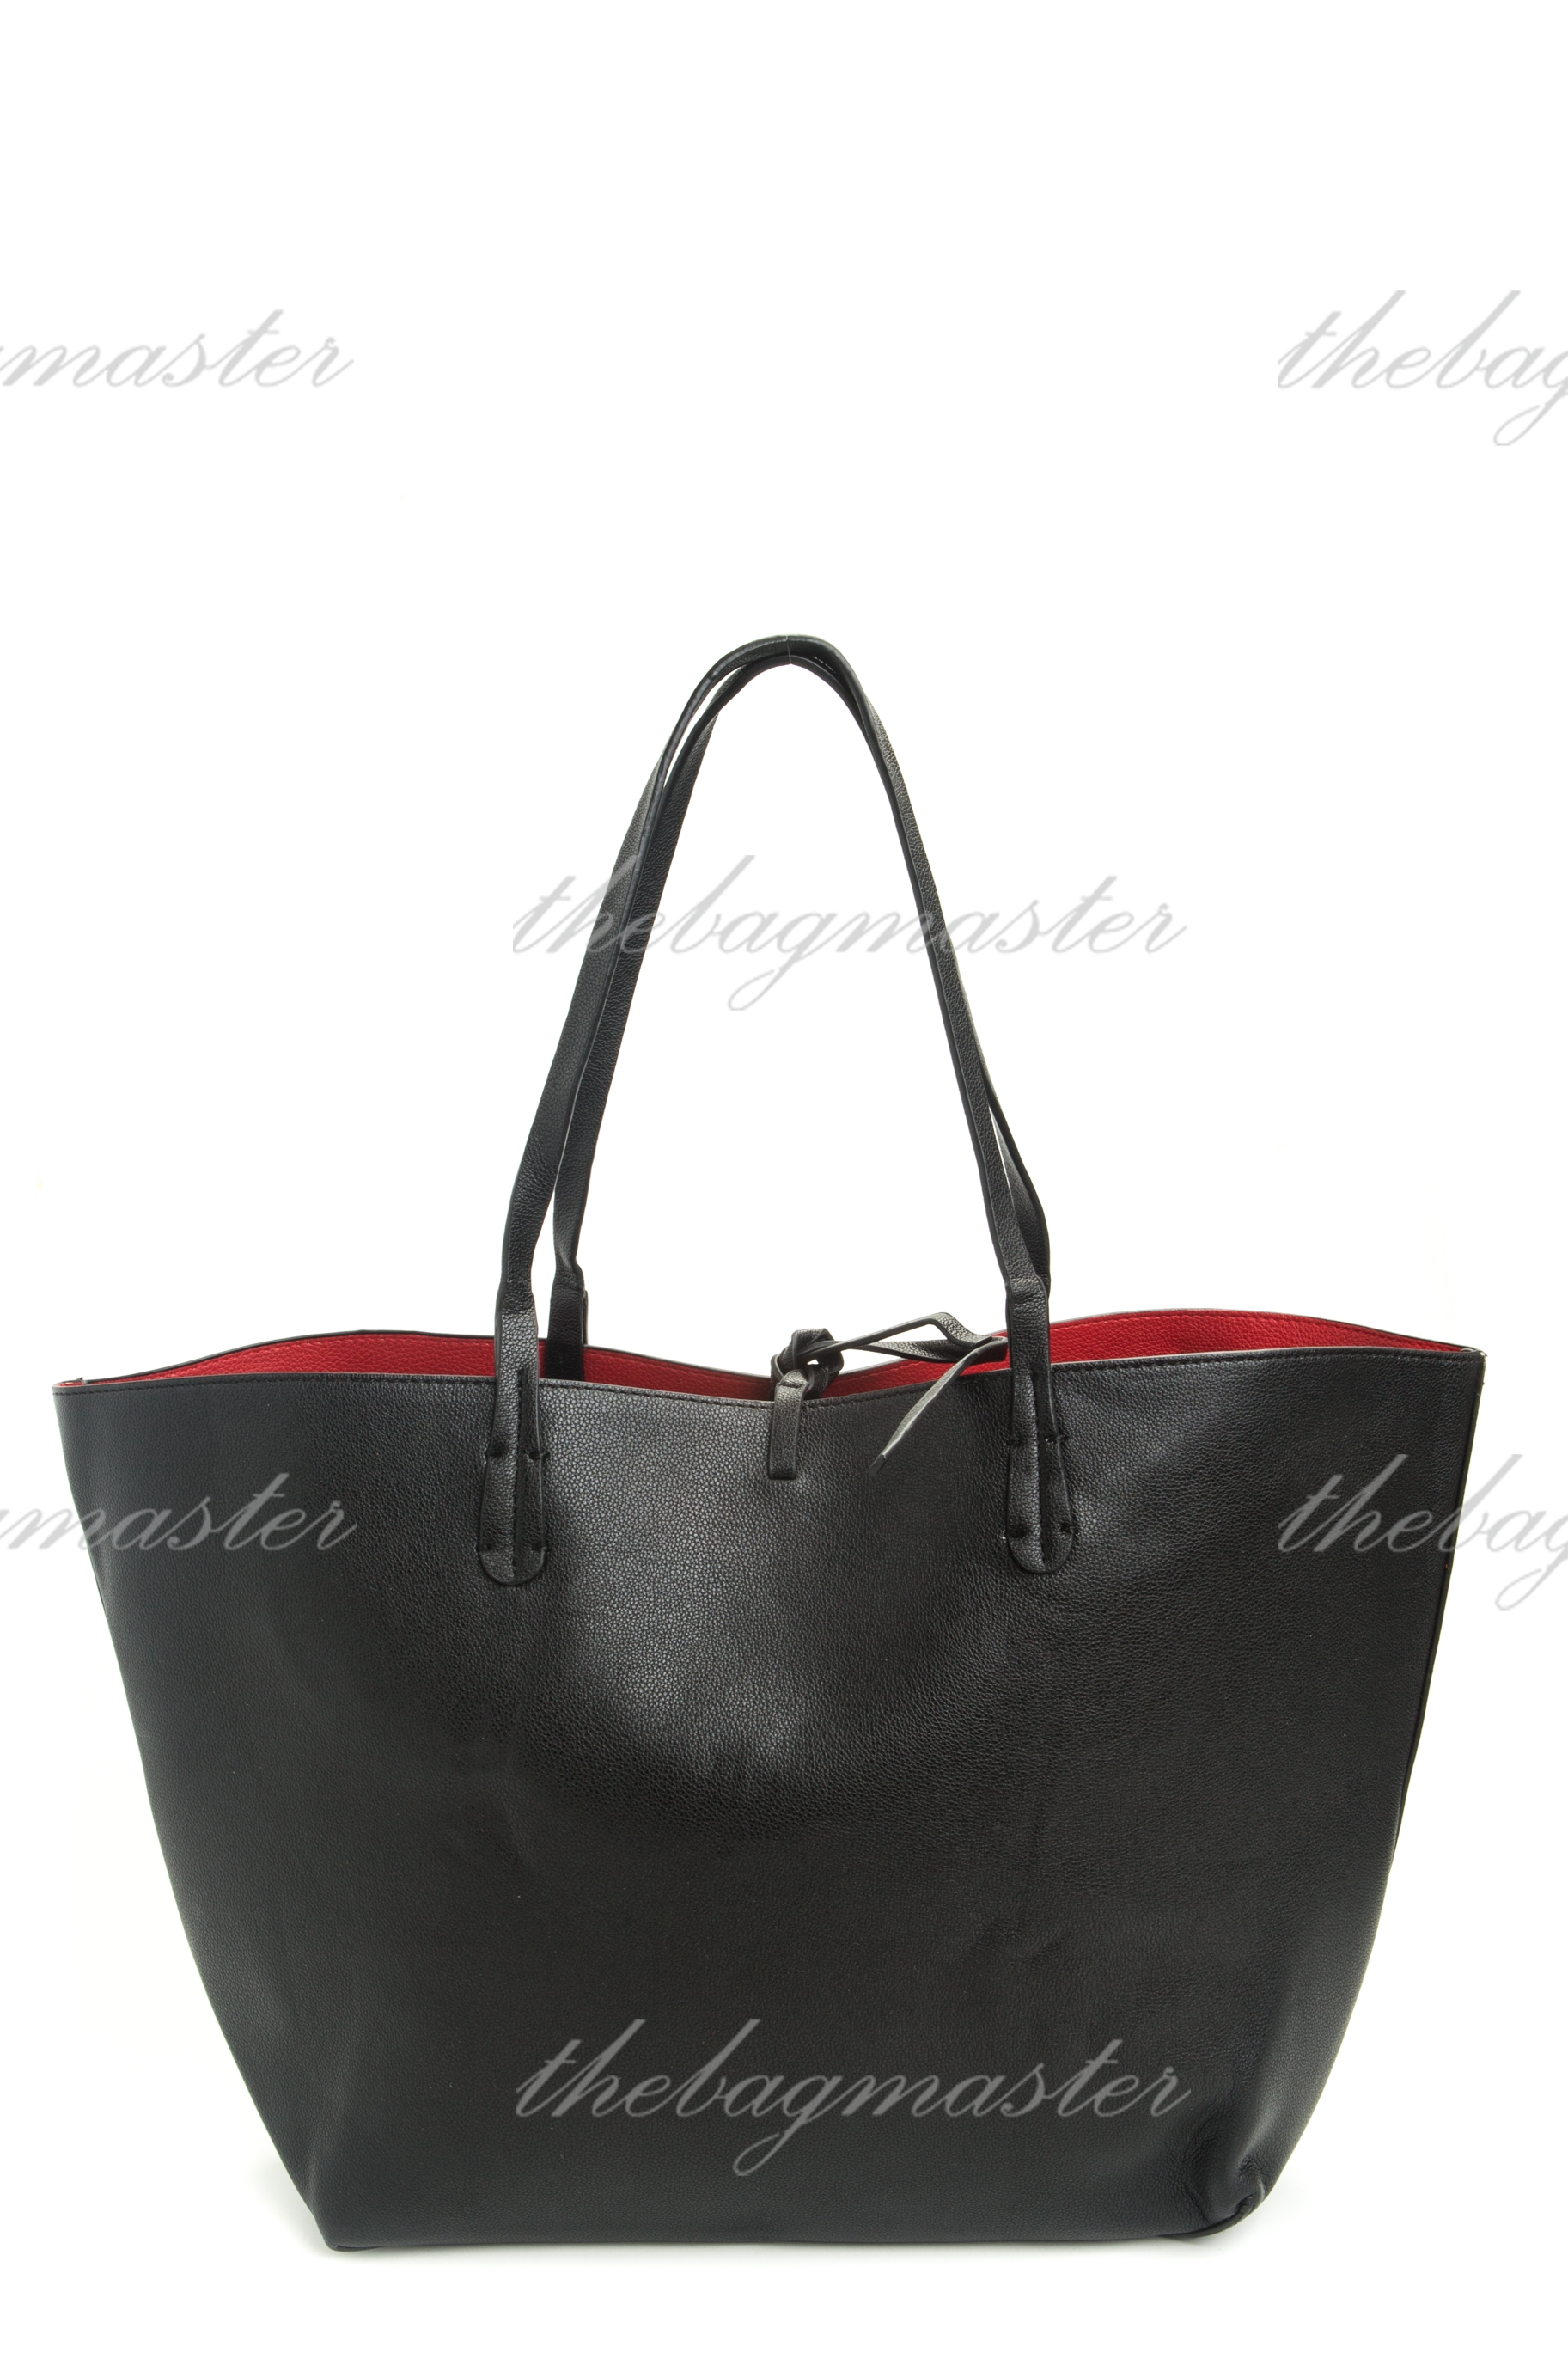 46c0c0860d Zara Reversible Contrast Shopper Bag - Black / Red — The Lifestyle Store